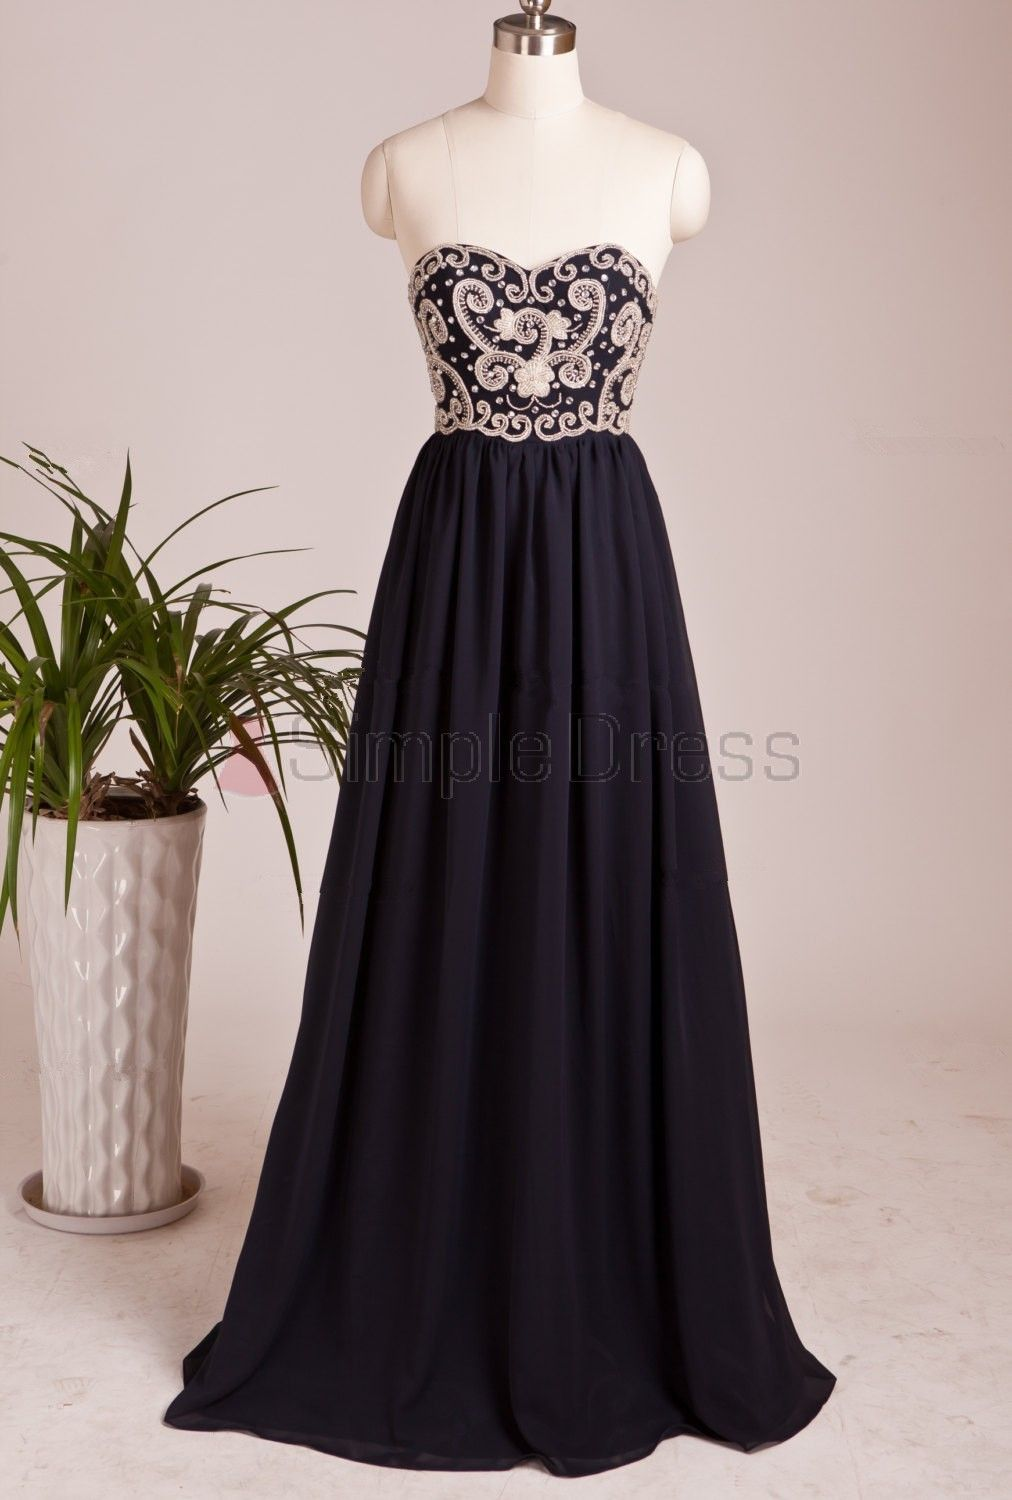 Buy simple dress handmade sweetheart long navy chiffon prom dresses